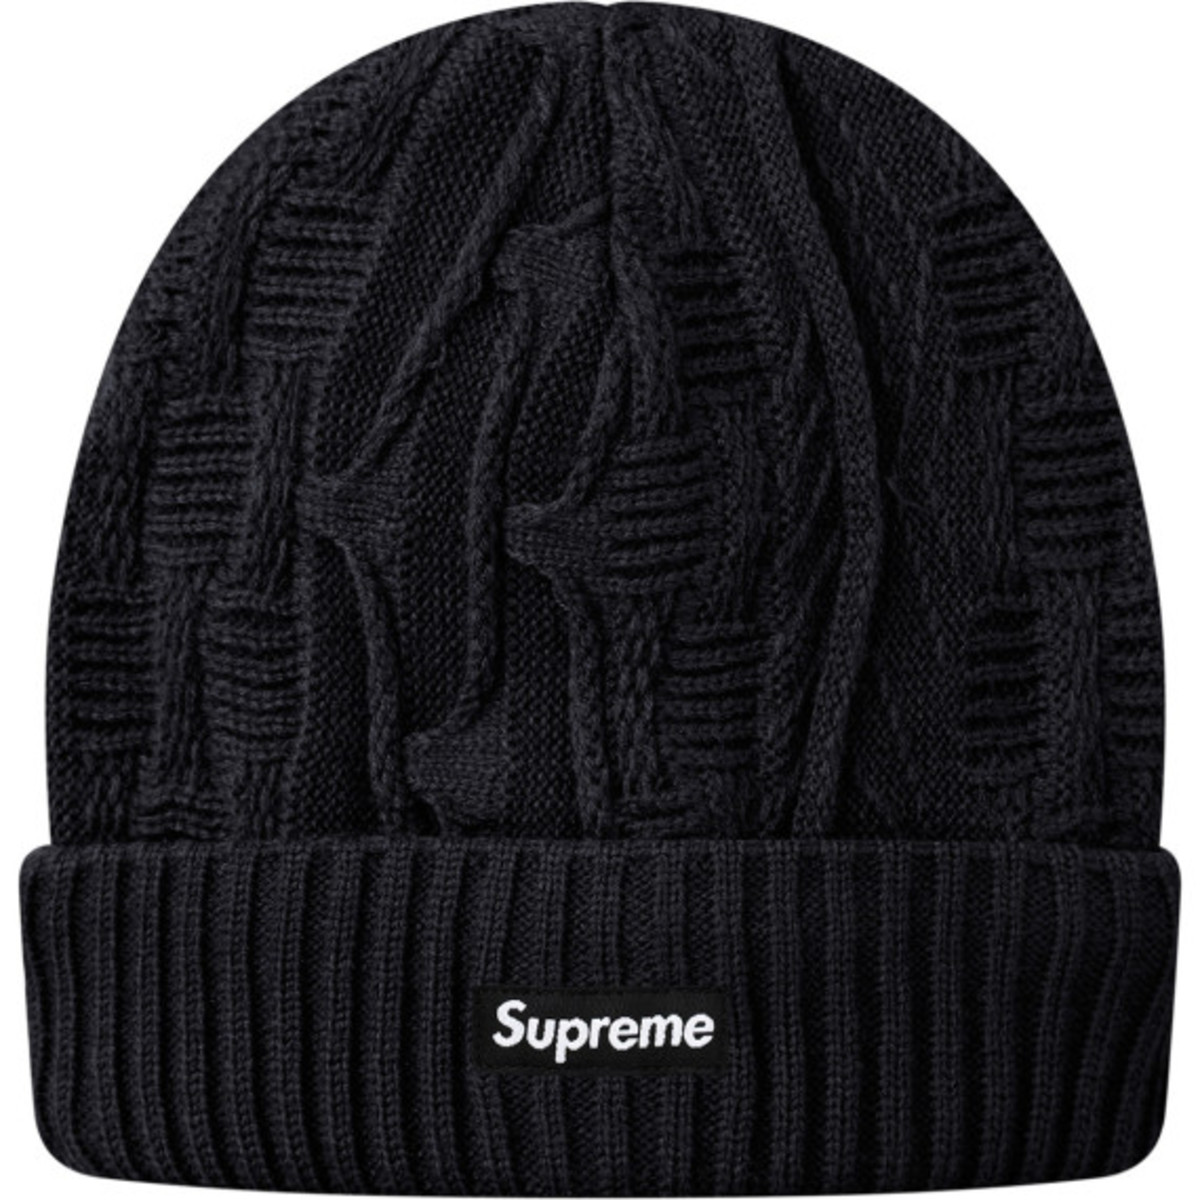 Supreme - Cosby Beanies with Small Box Logo  1042dcd1b93